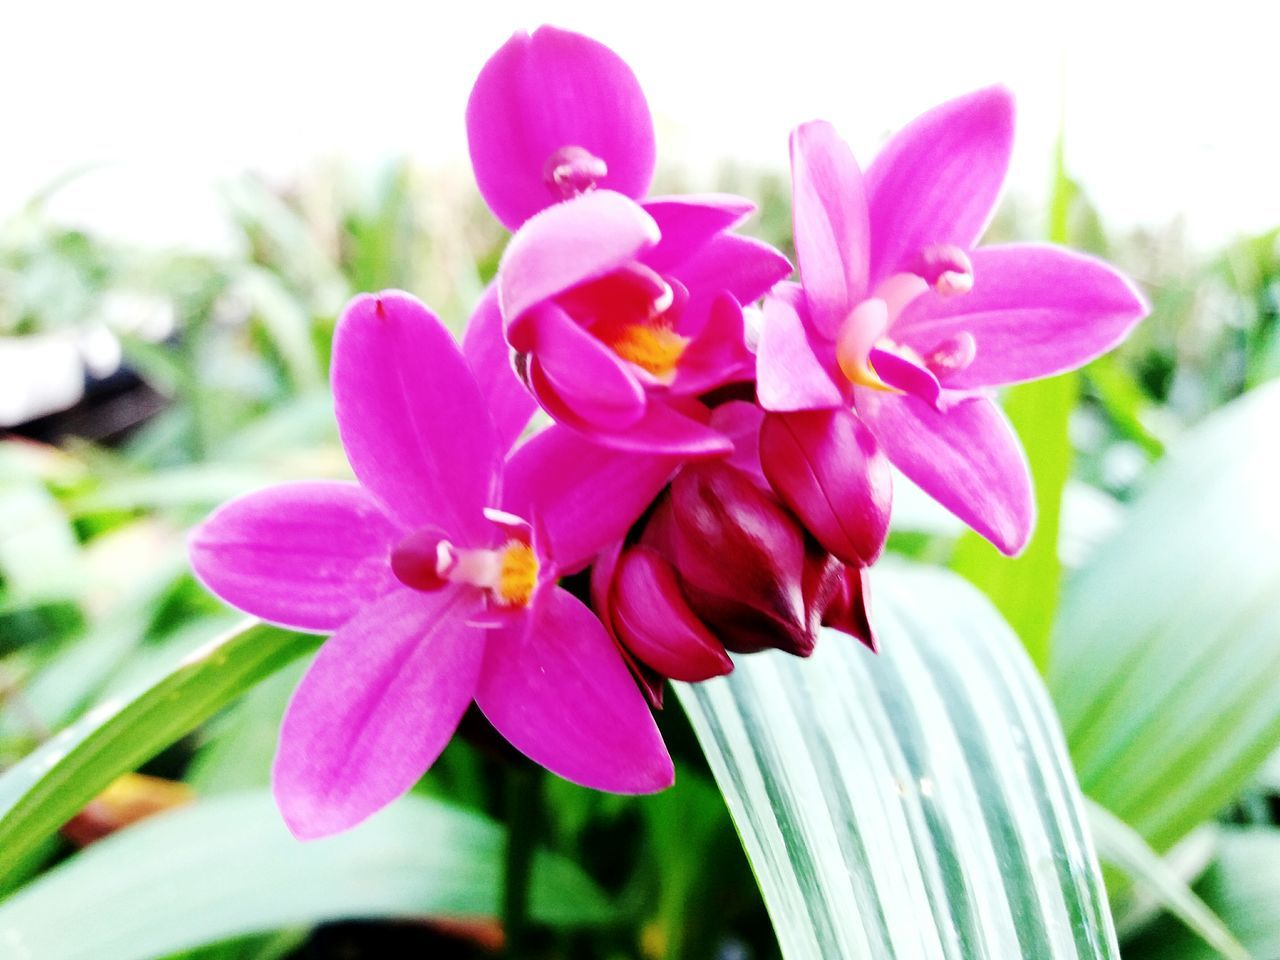 Pink Color Flower Day Orchid Focus On Foreground Nature Petal No People Close-up Outdoors Beauty In Nature Fragility Plant Flower Head Freshness Water Orchid Flower Nature Orchid Orchids In Bloom Orchidslover Orchids Collection Flowerbed Orchids